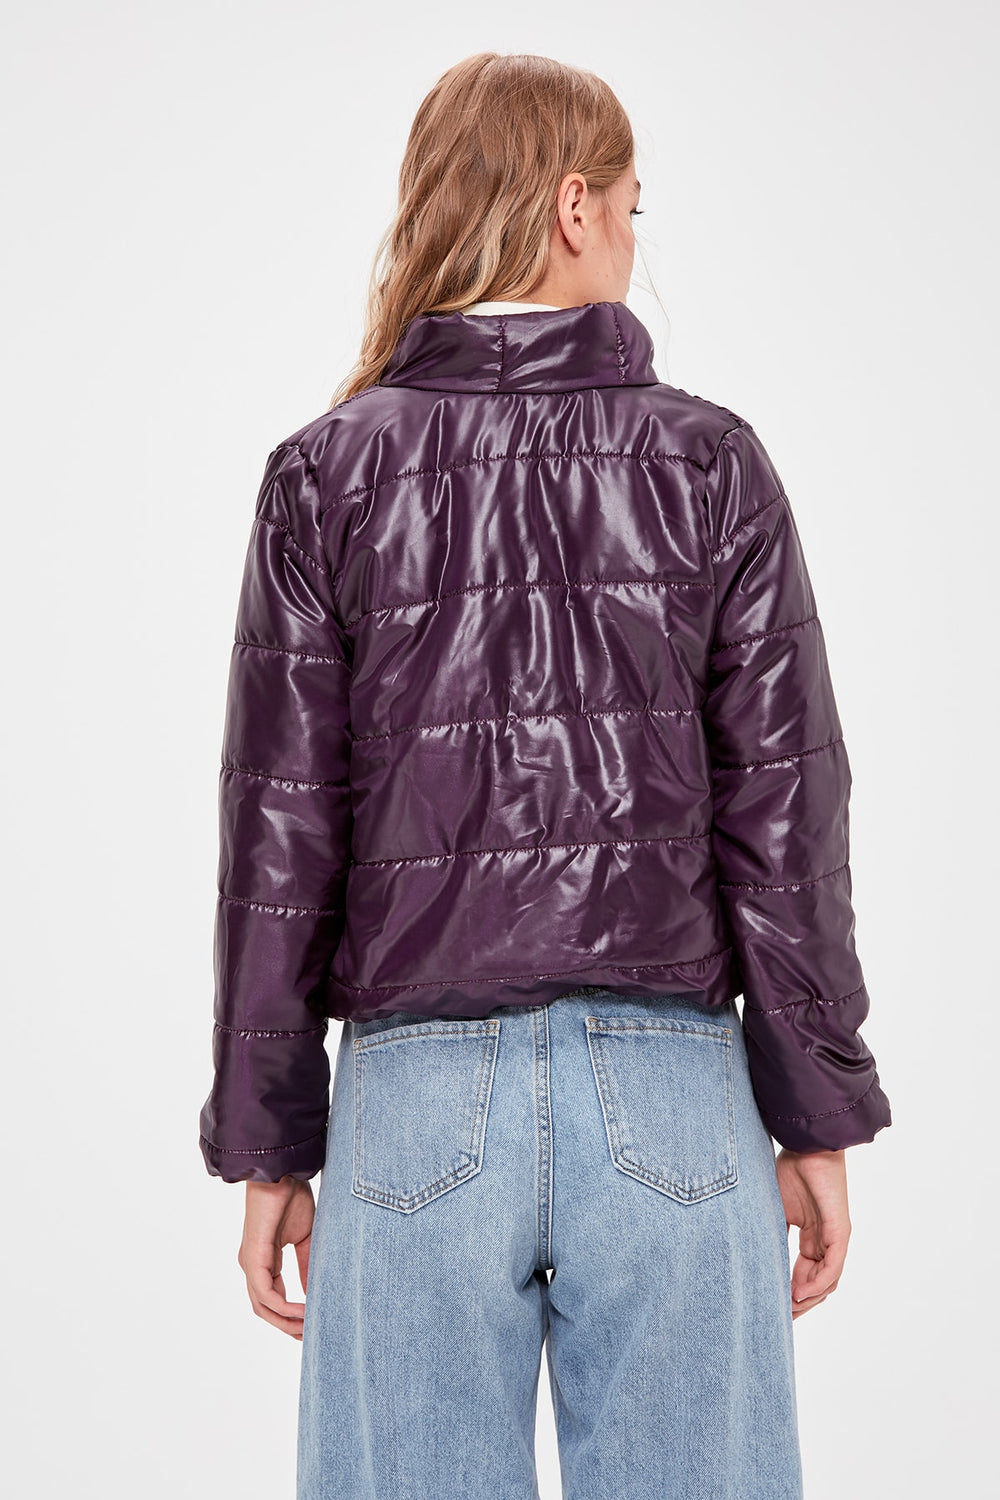 Damson Zipper It Should Cover Upright Collar Inflatable Crop coats - Top Maxy